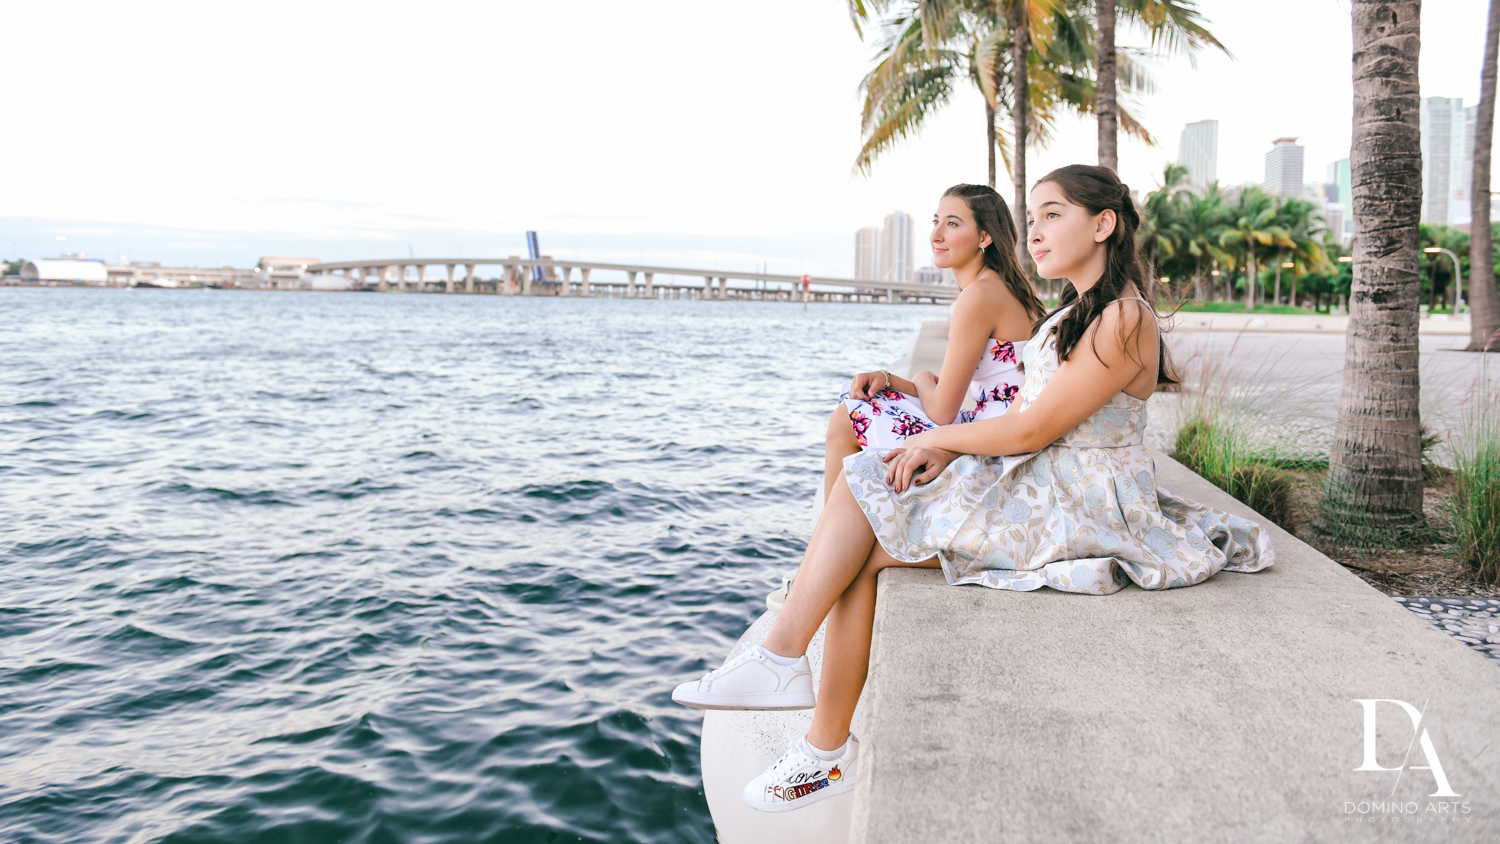 waterside at Fire & Ice B'Nai Mitzvah at Perez Art Museum Miami by Domino Arts Photography